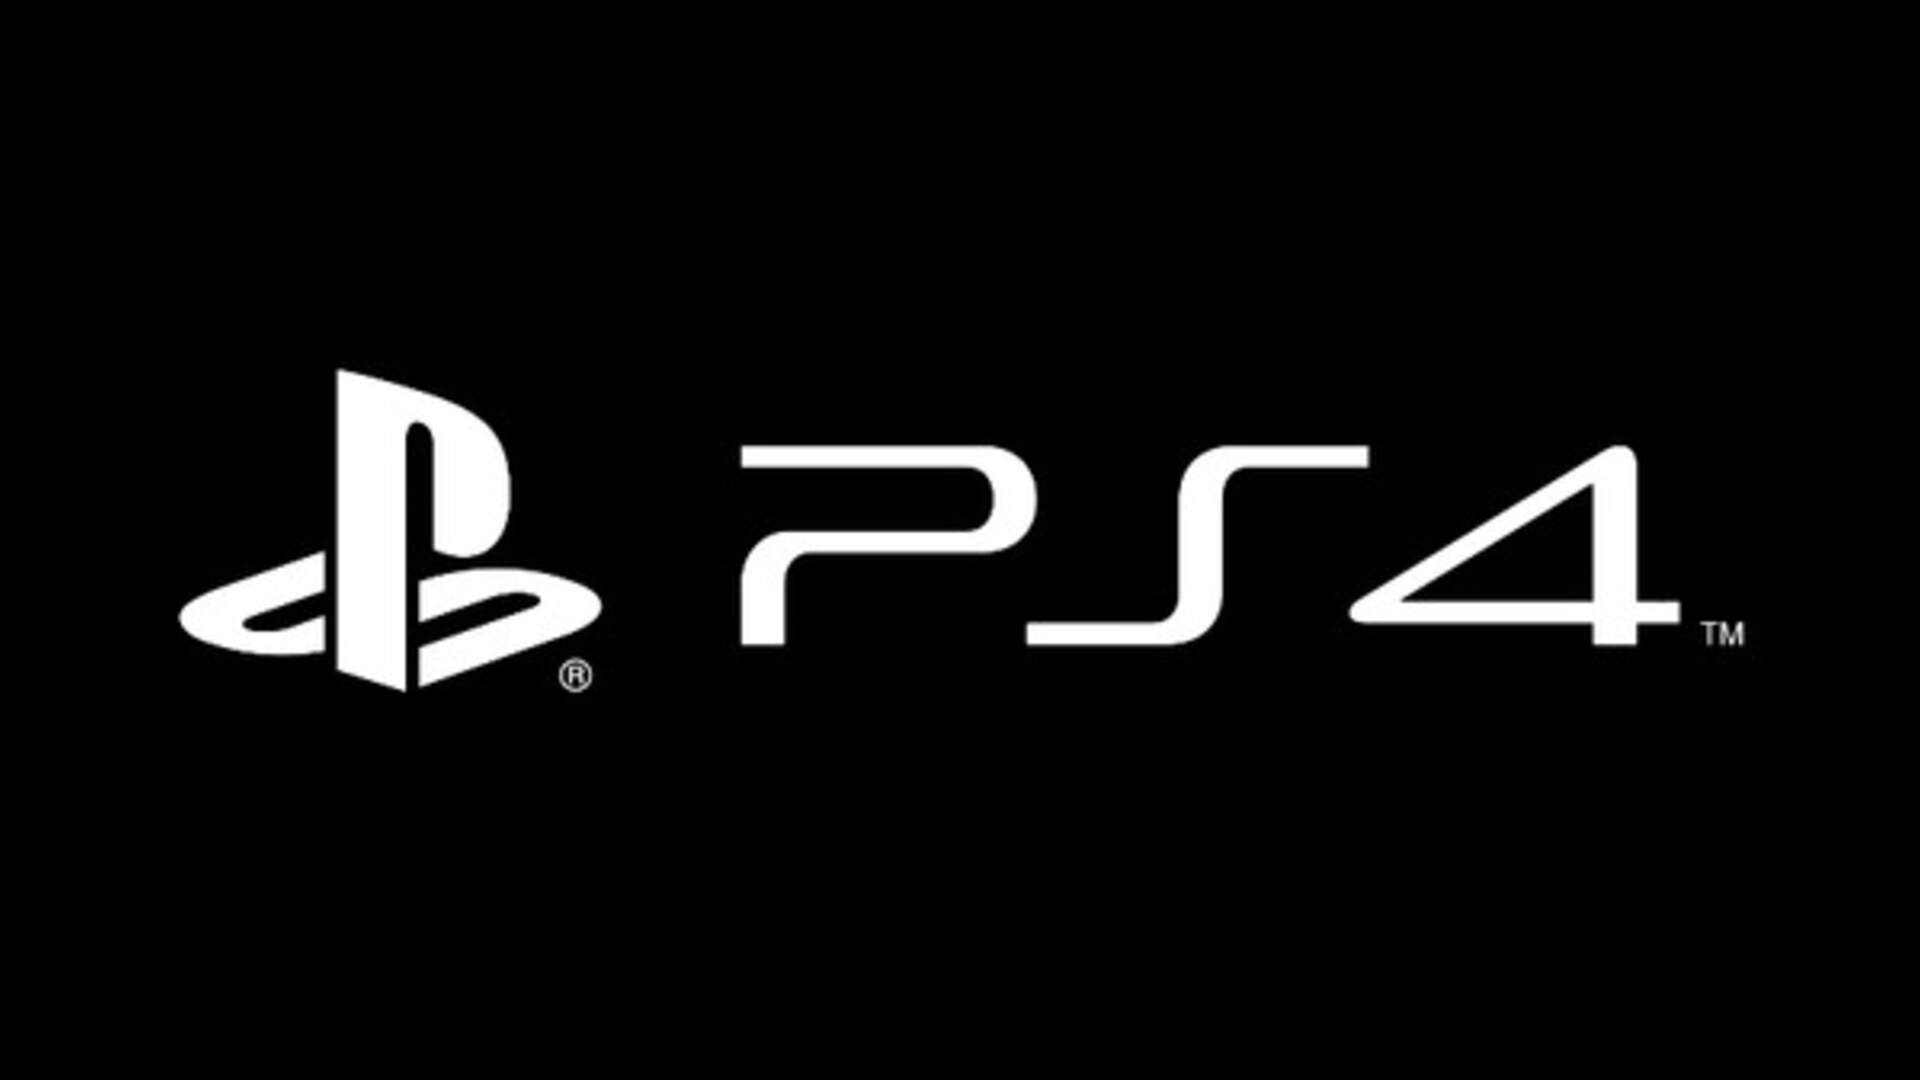 Sony Working to Fix Message Bug That Forces PS4 Owners to Factory Reset Consoles